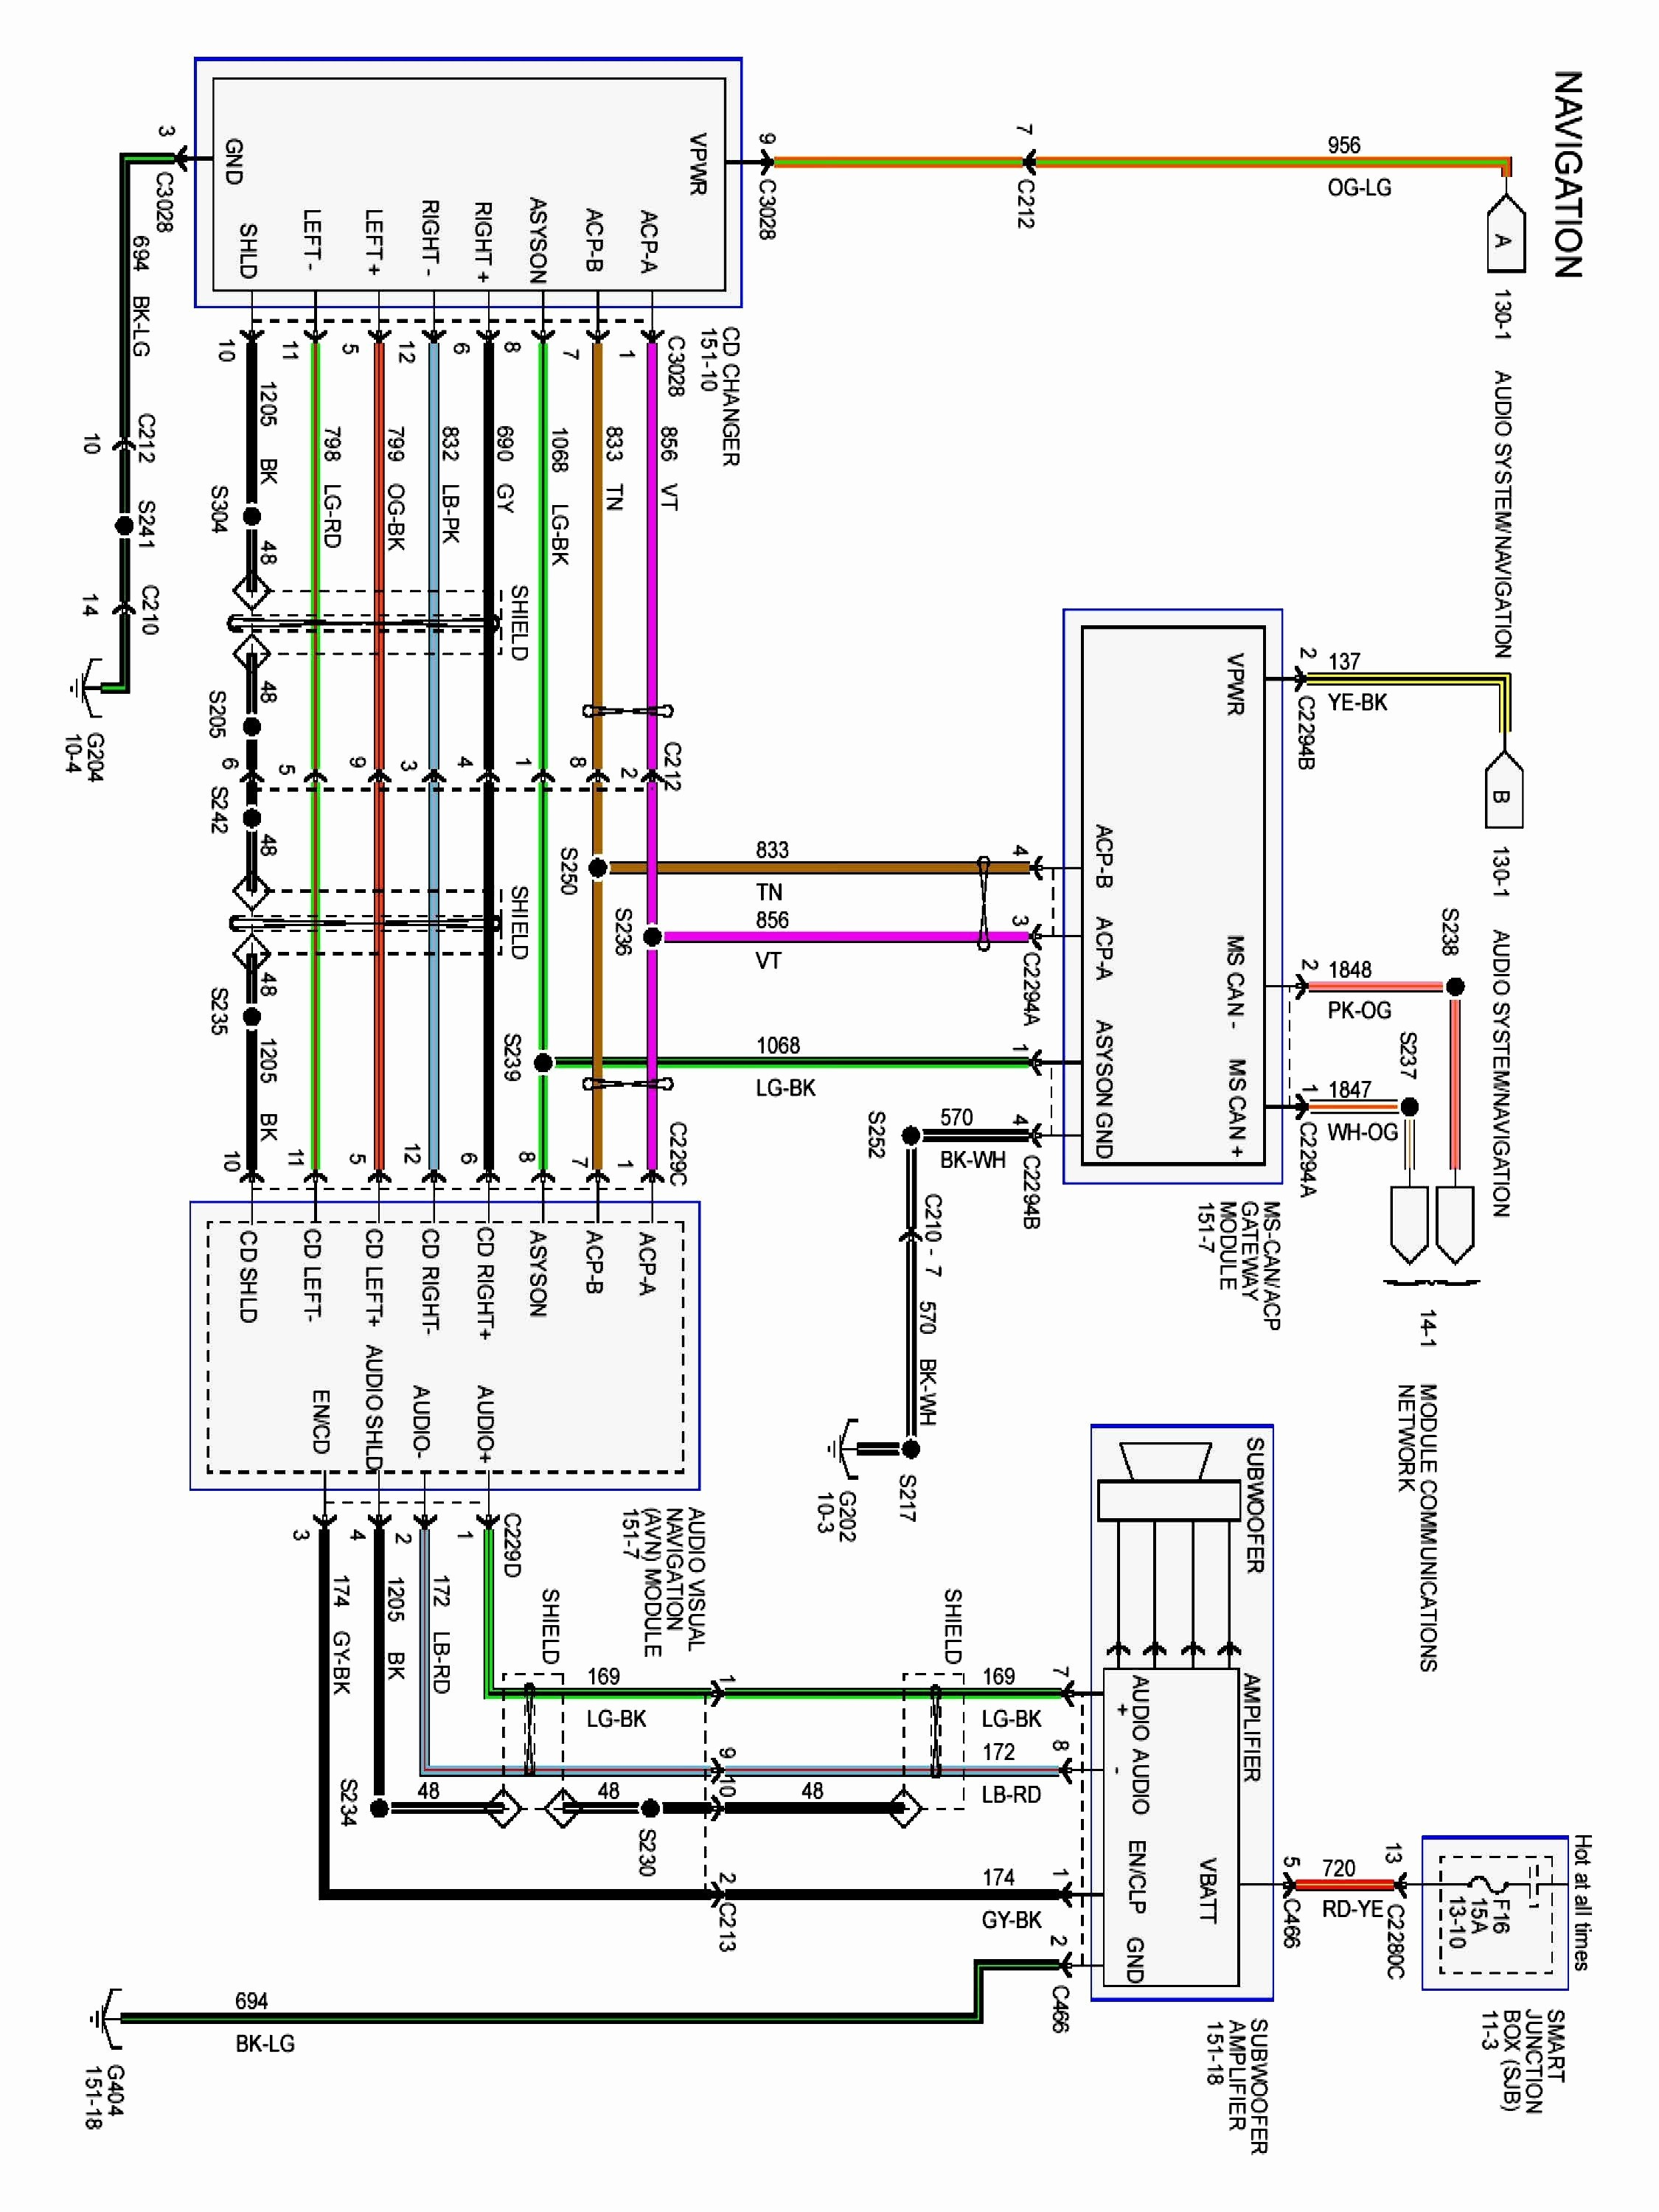 2007 ford Taurus Engine Diagram 2003 ford Taurus Relay Diagram Another Blog About Wiring Diagram • Of 2007 ford Taurus Engine Diagram